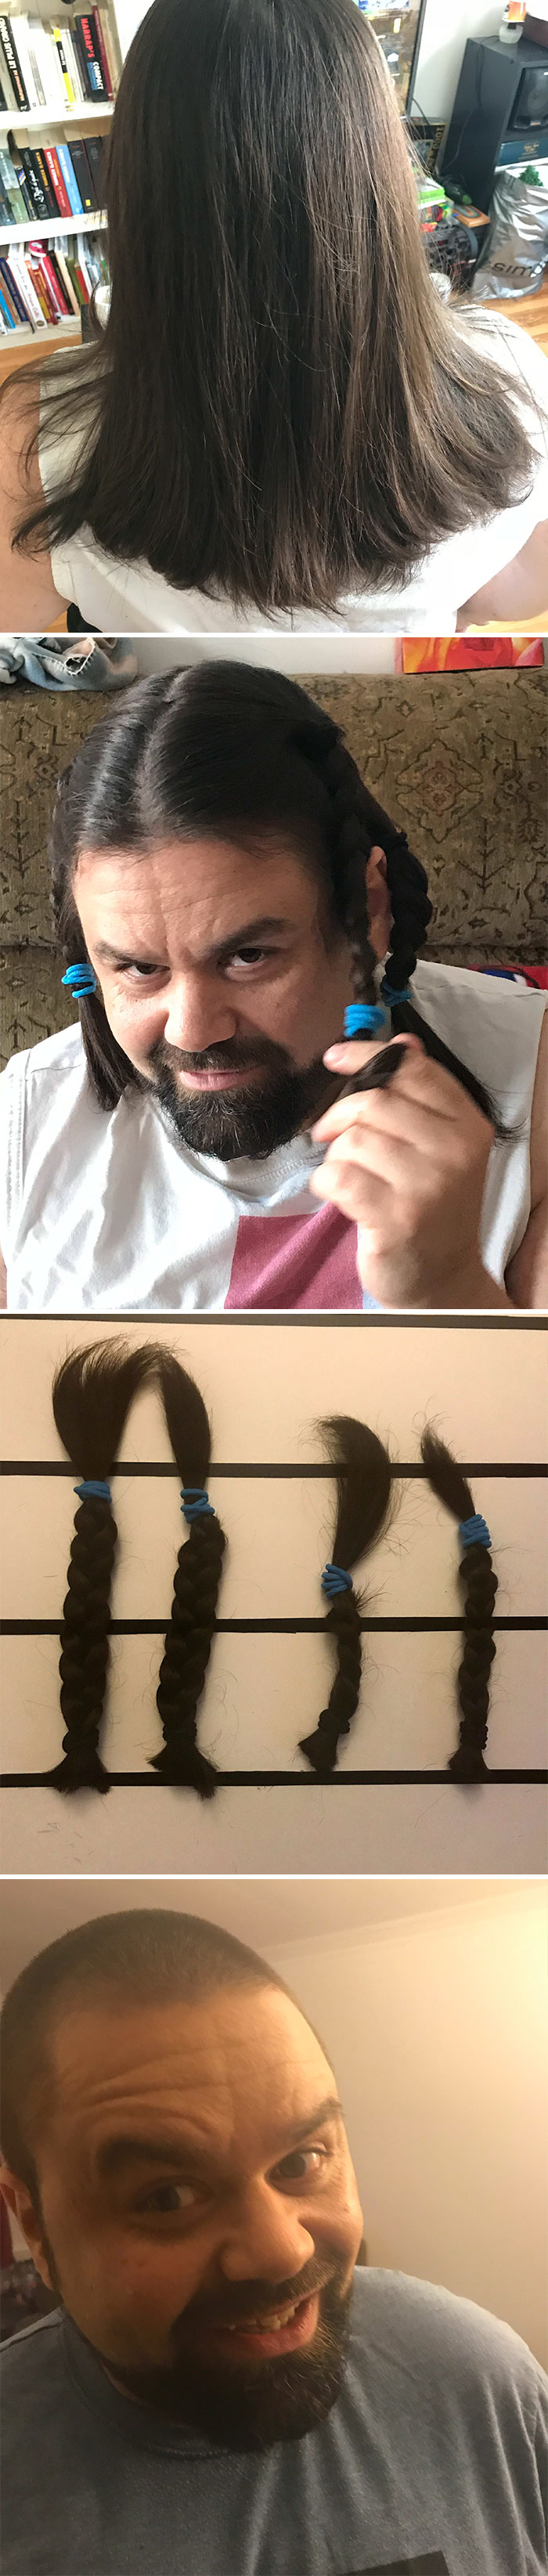 Ten Years Cancer Free! I Had Made My Hair Grow To Give It To Charity. I'll Be Back With More Hair In Two Years!